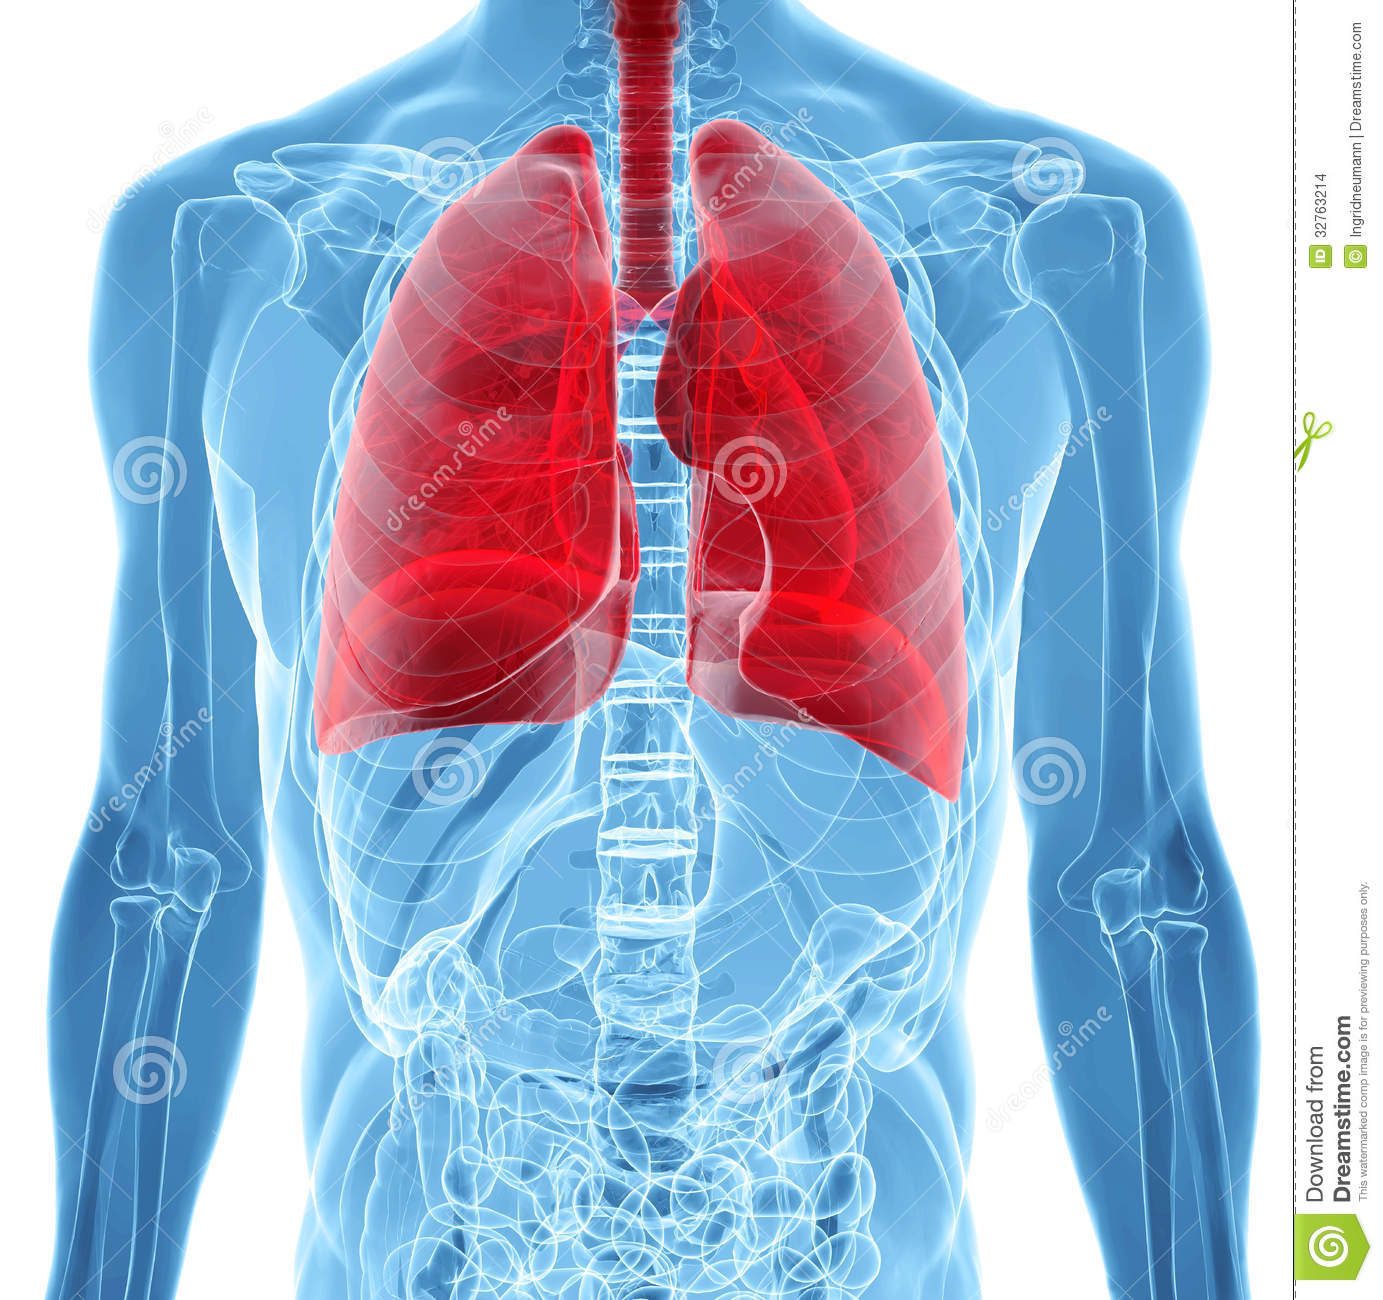 Anatomy Of Human Lungs In X-ray View Stock Illustration ...